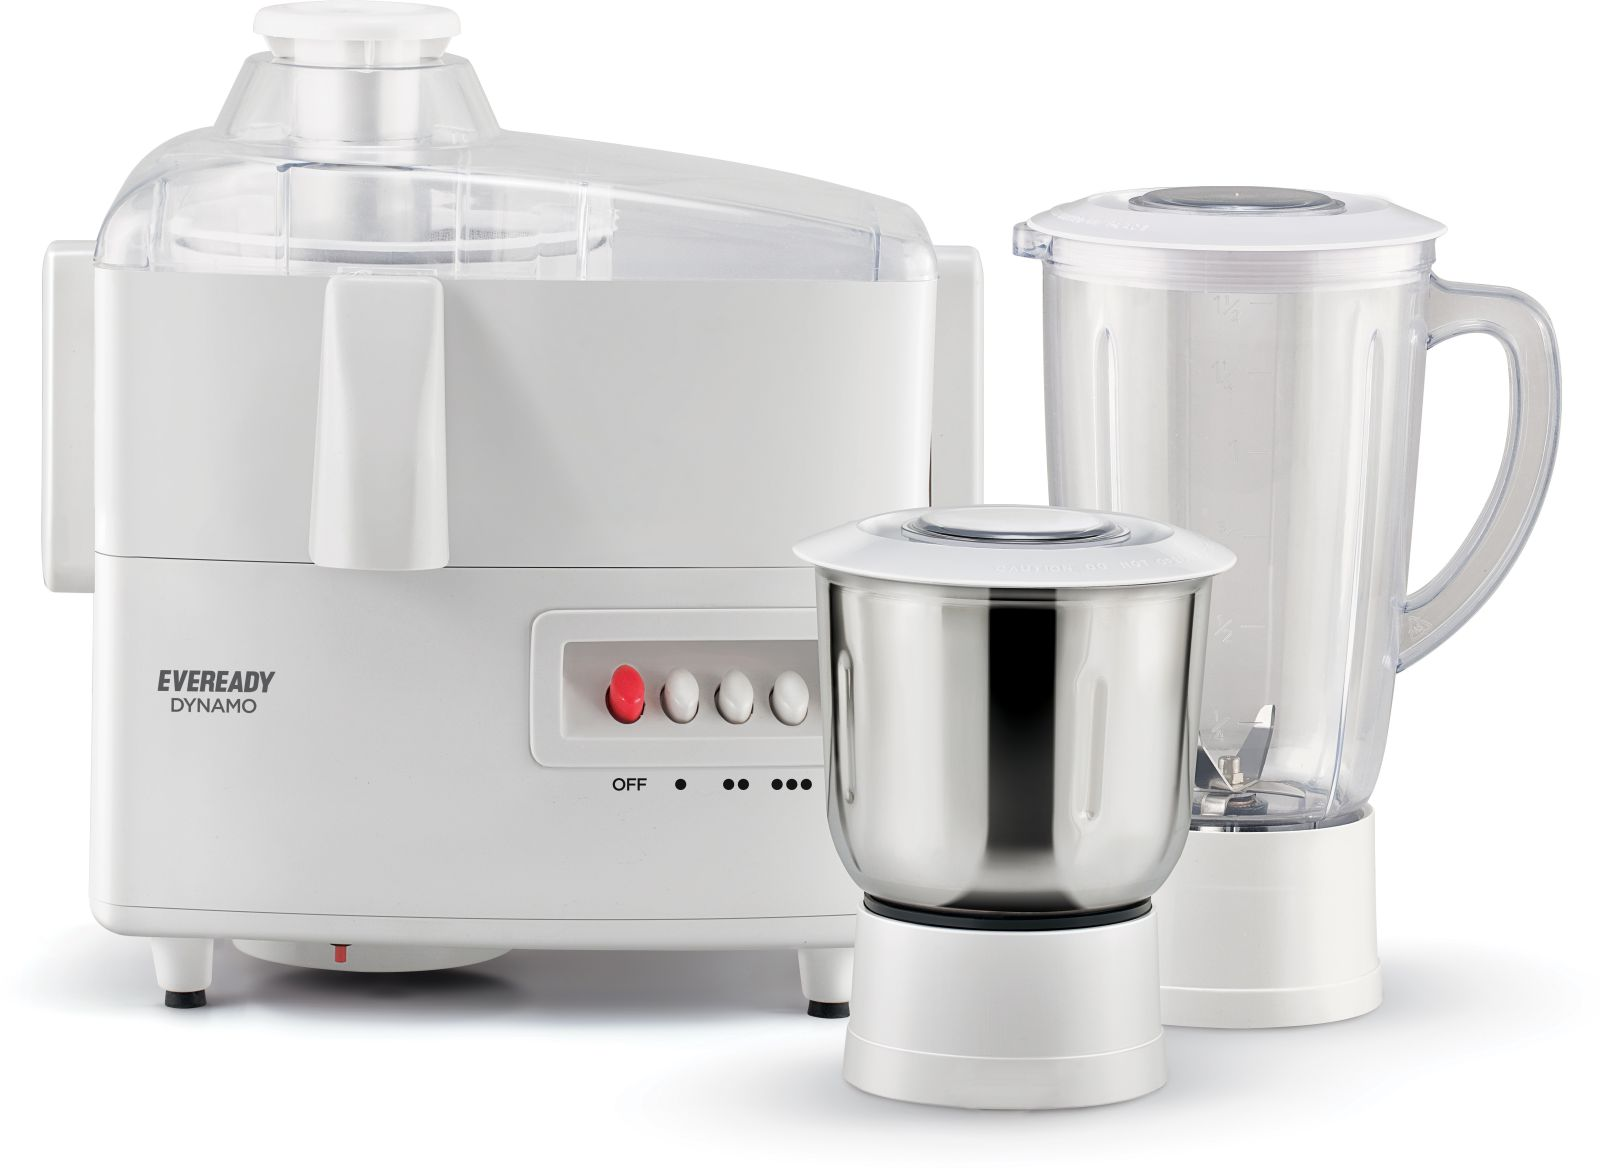 Eveready Dynamo 450W Juicer Mixer Grinder with 2 Jars @Rs.1399 only [Mrp-3495] Flipkart